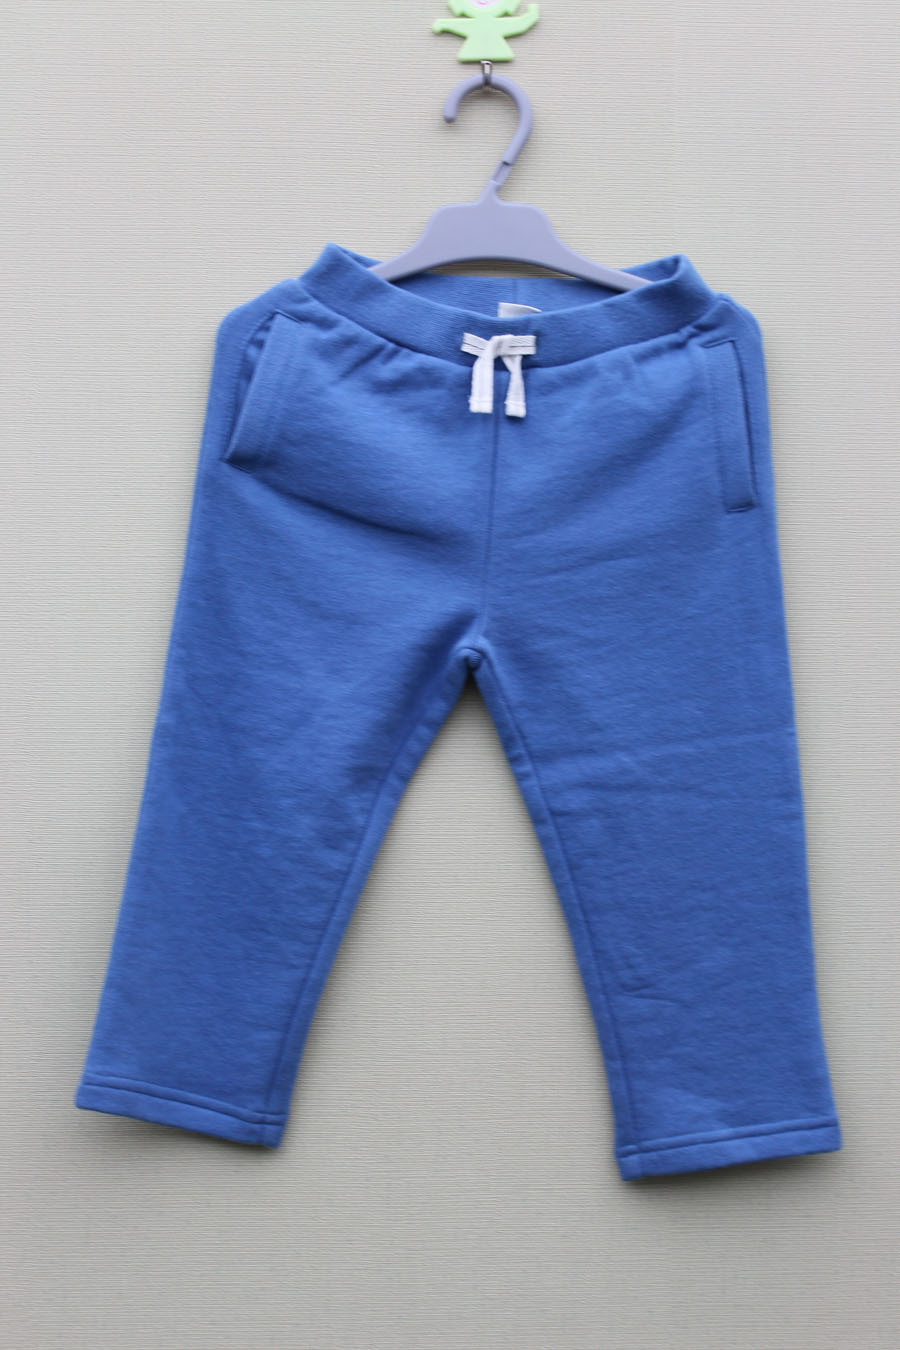 Baby Cotton Clothing